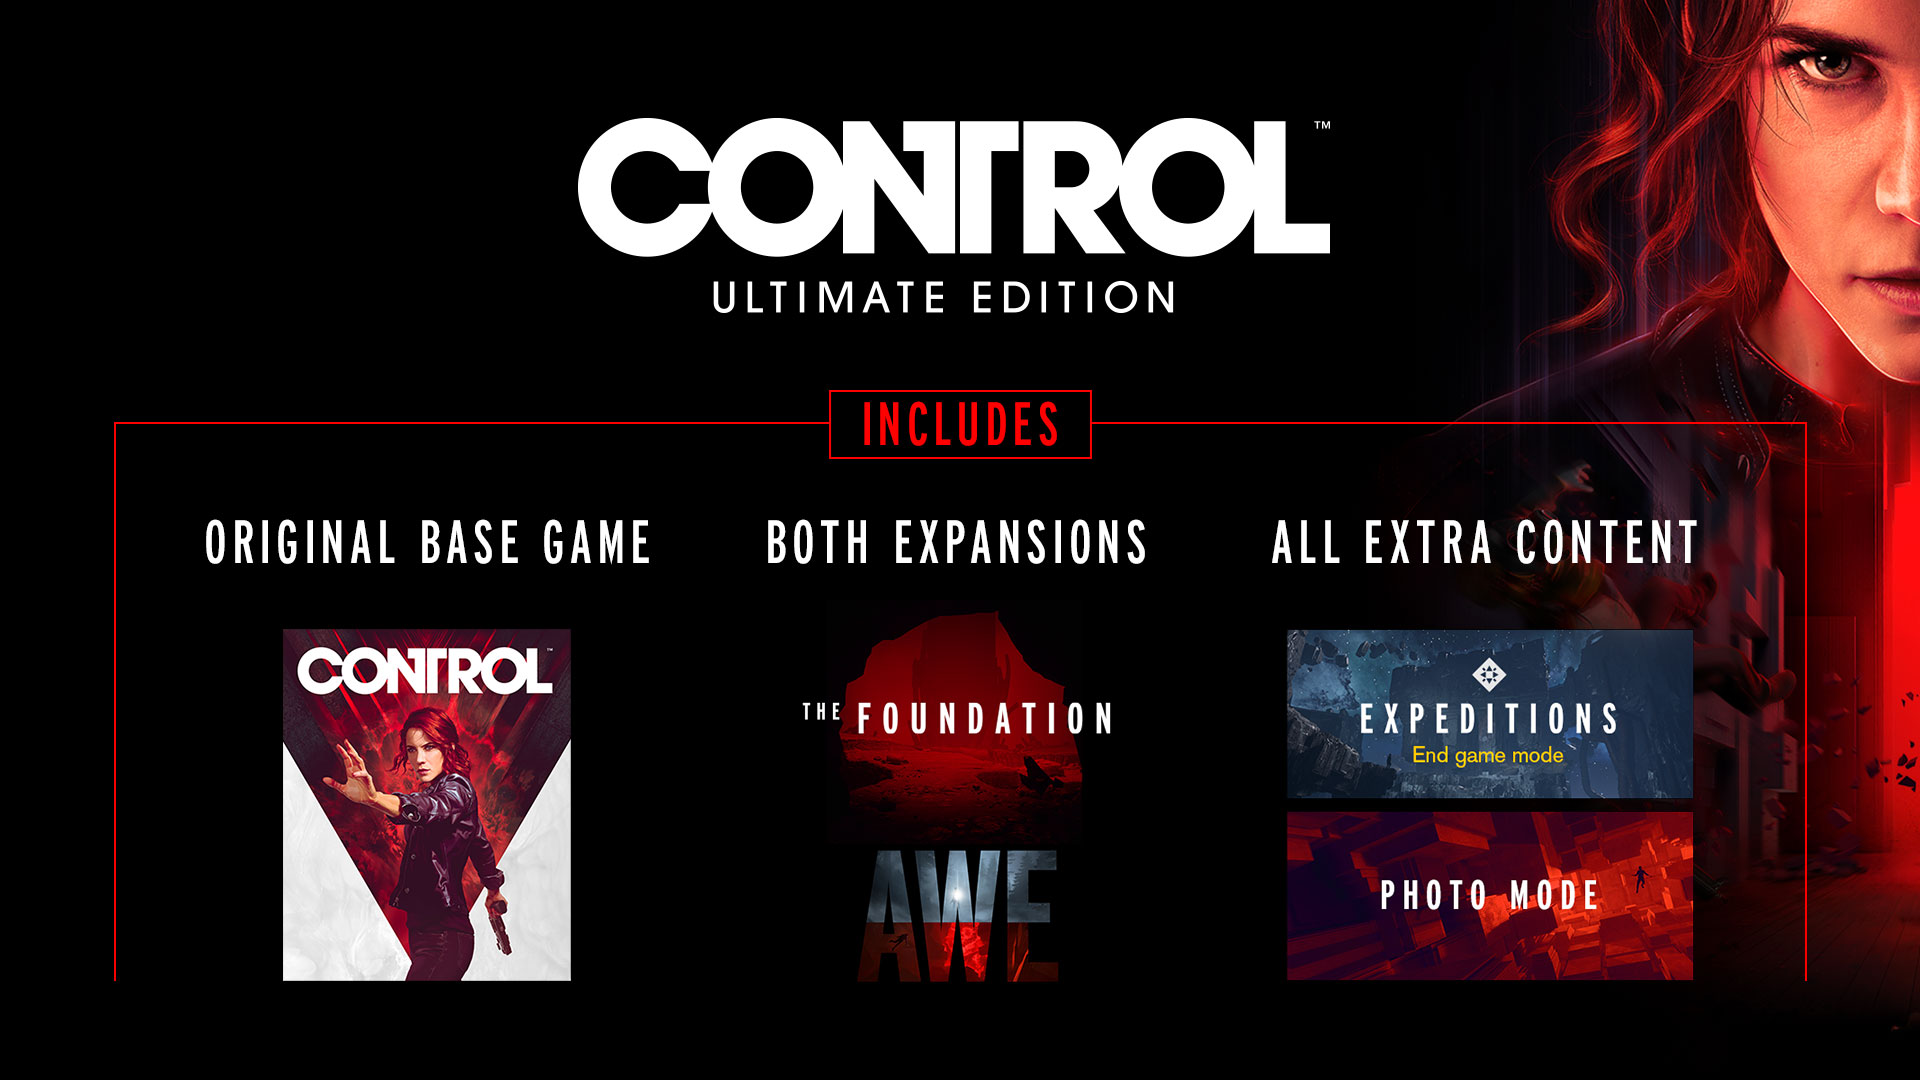 60% Control Ultimate Edition on GOG.com